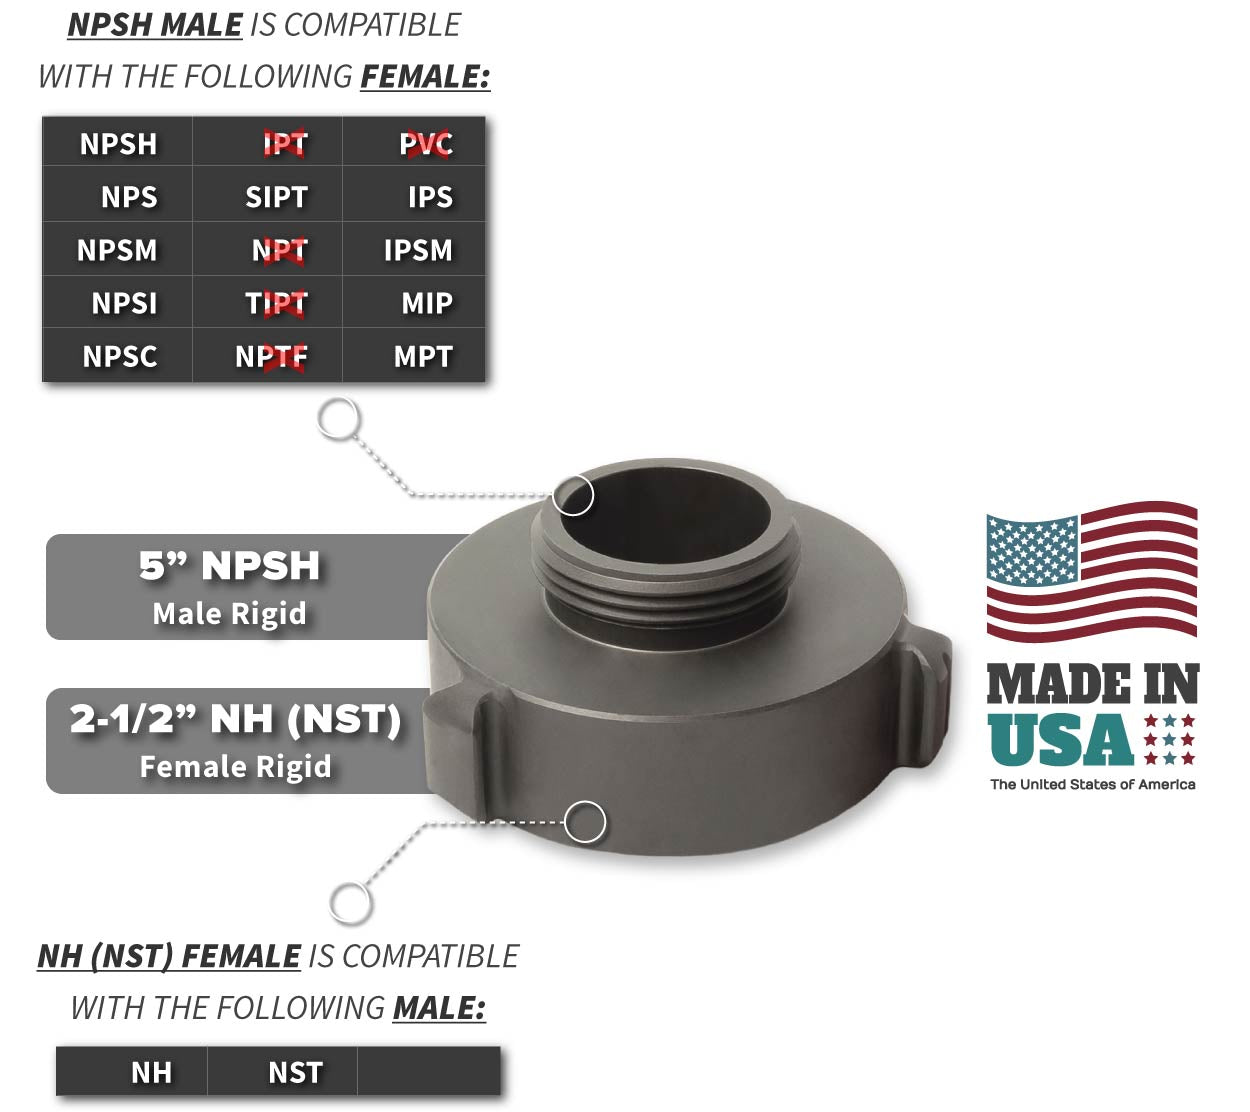 2.5 Inch NH-NST Female x 5 Inch NPSH Male Compatibility Thread Chart